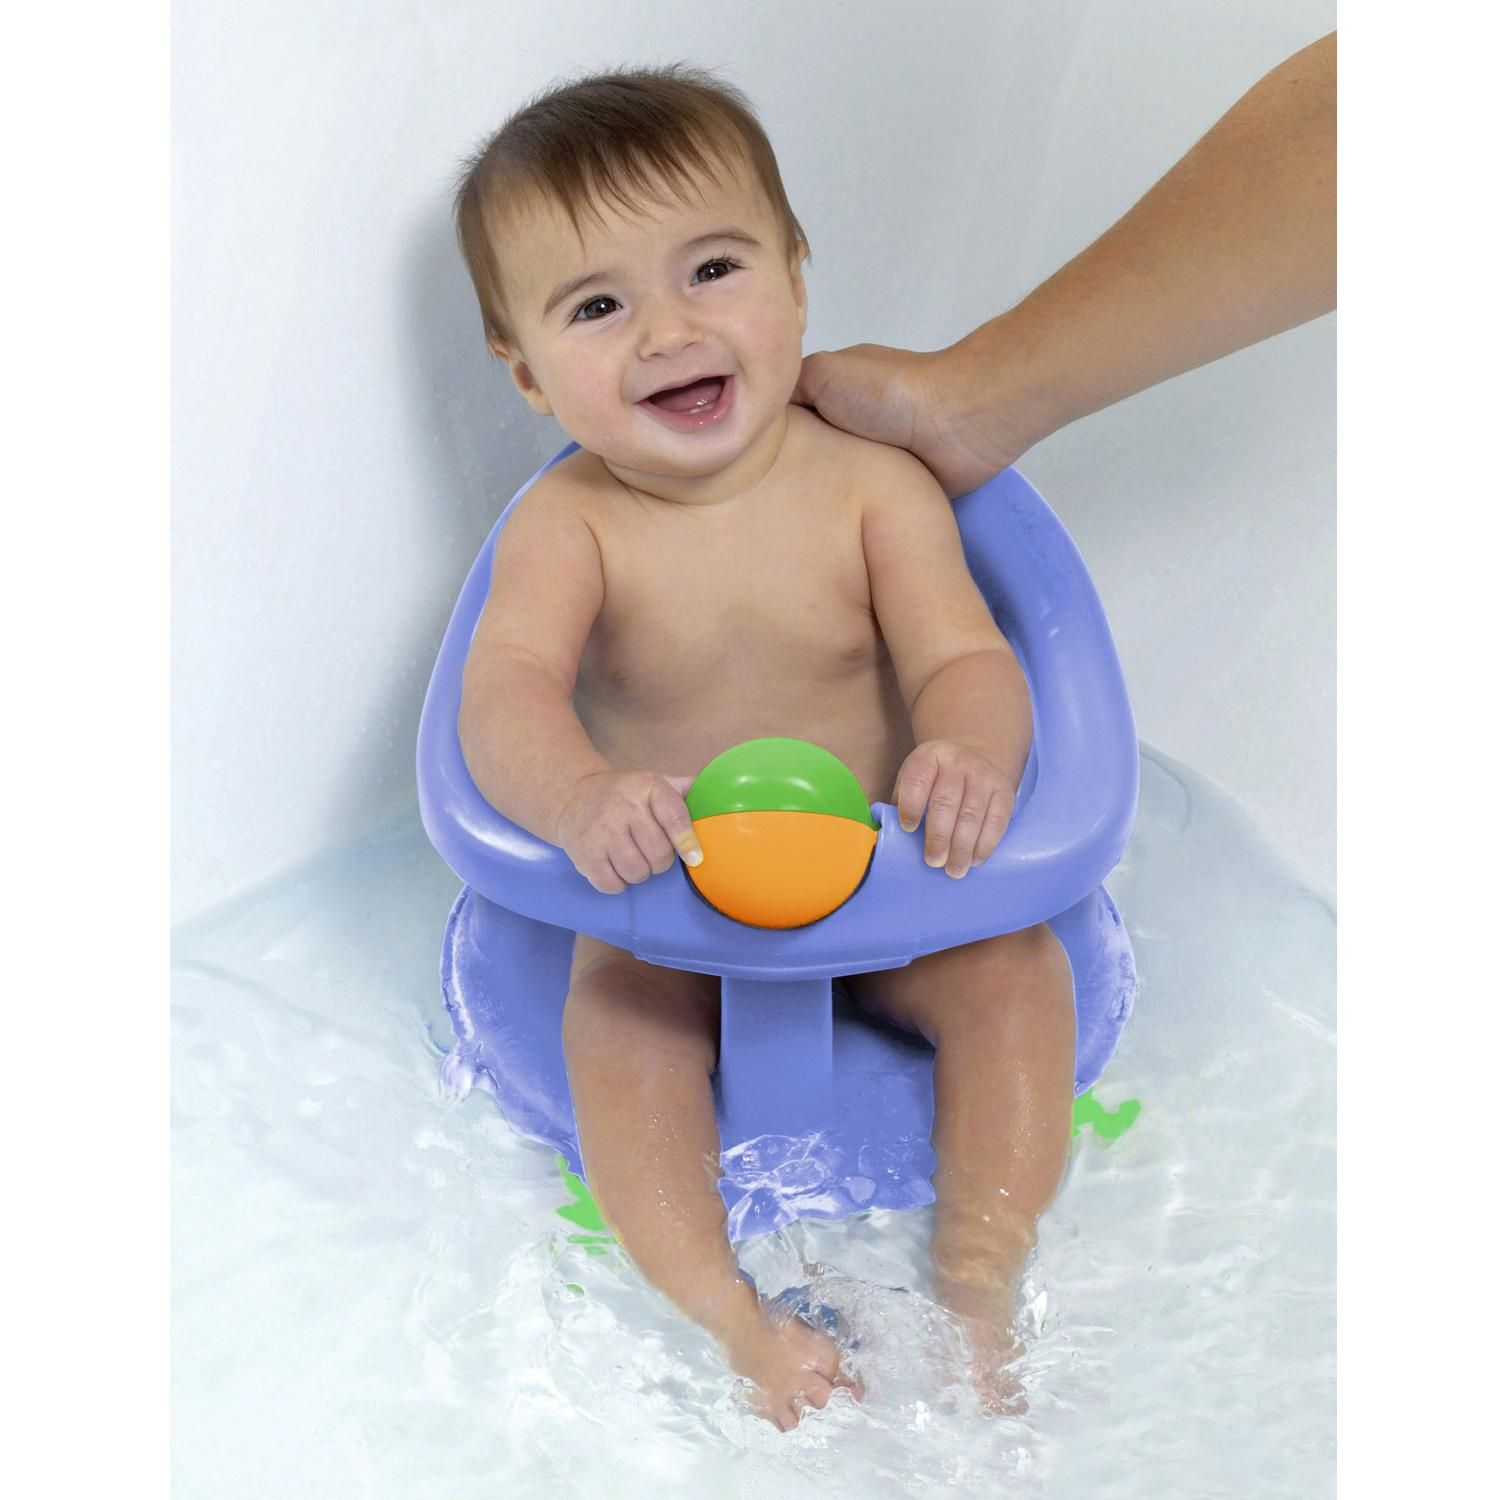 Safety 1st Swivel Bath Seat Pastel blue | Baby things | Pinterest ...